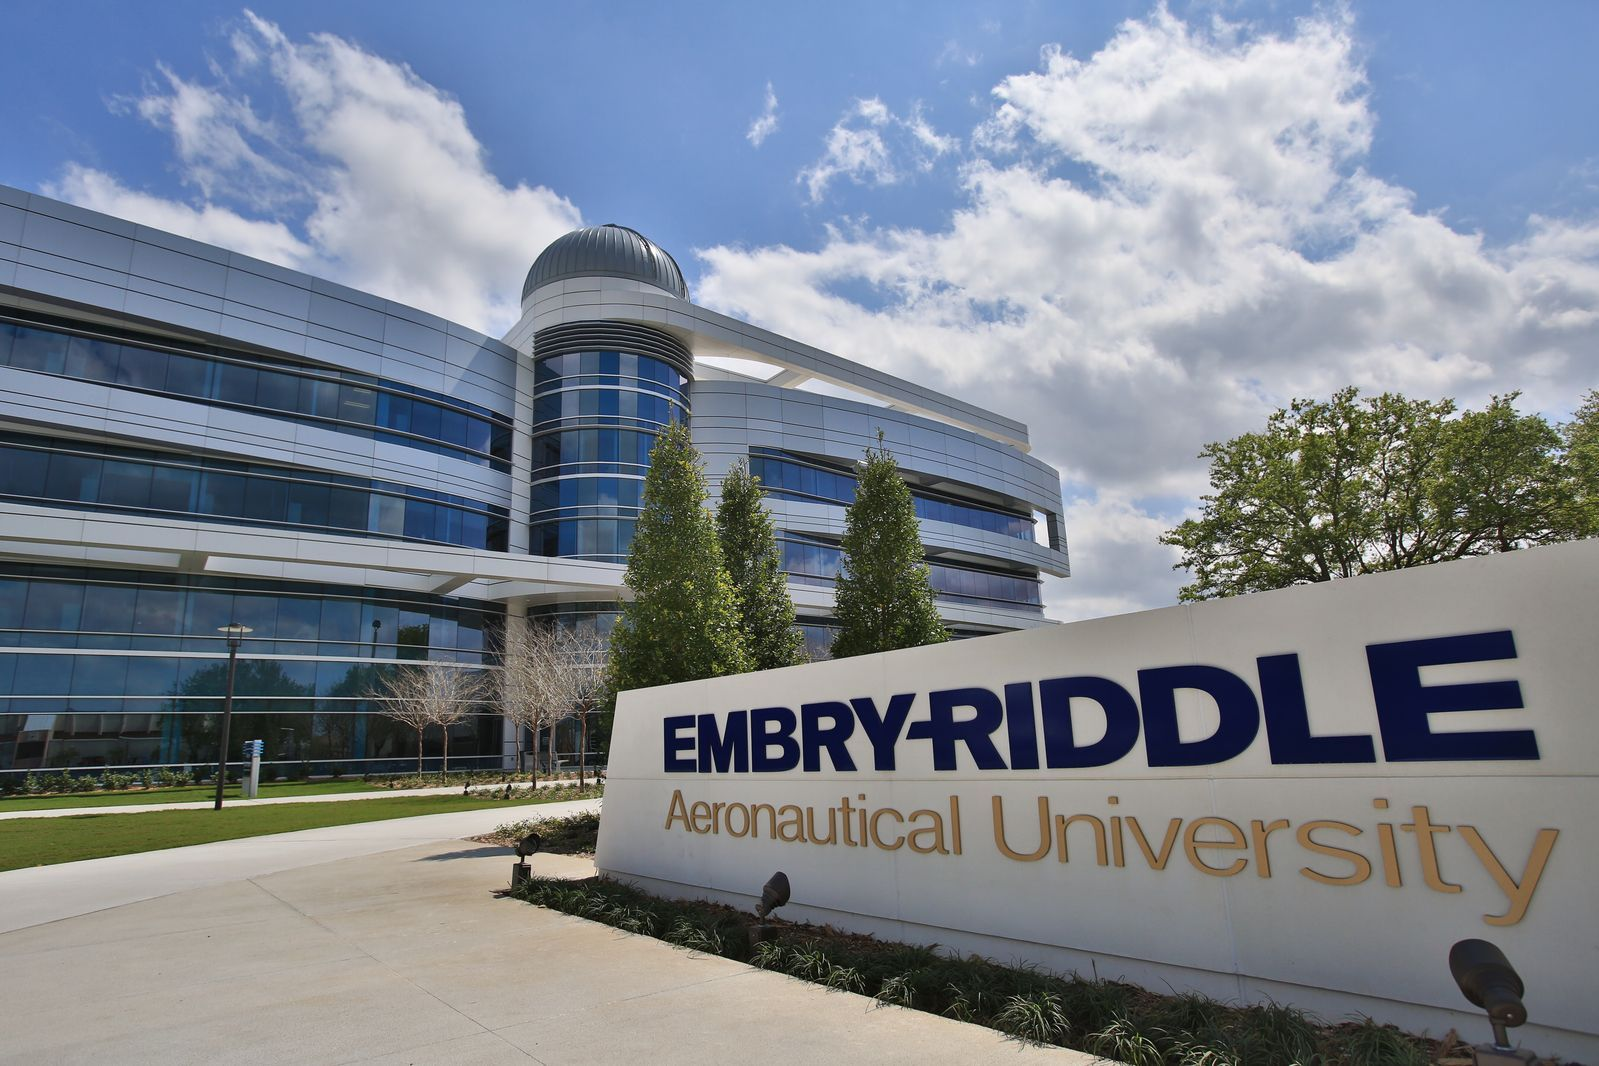 We can't wait to see Embry Riddle Aeronautical University